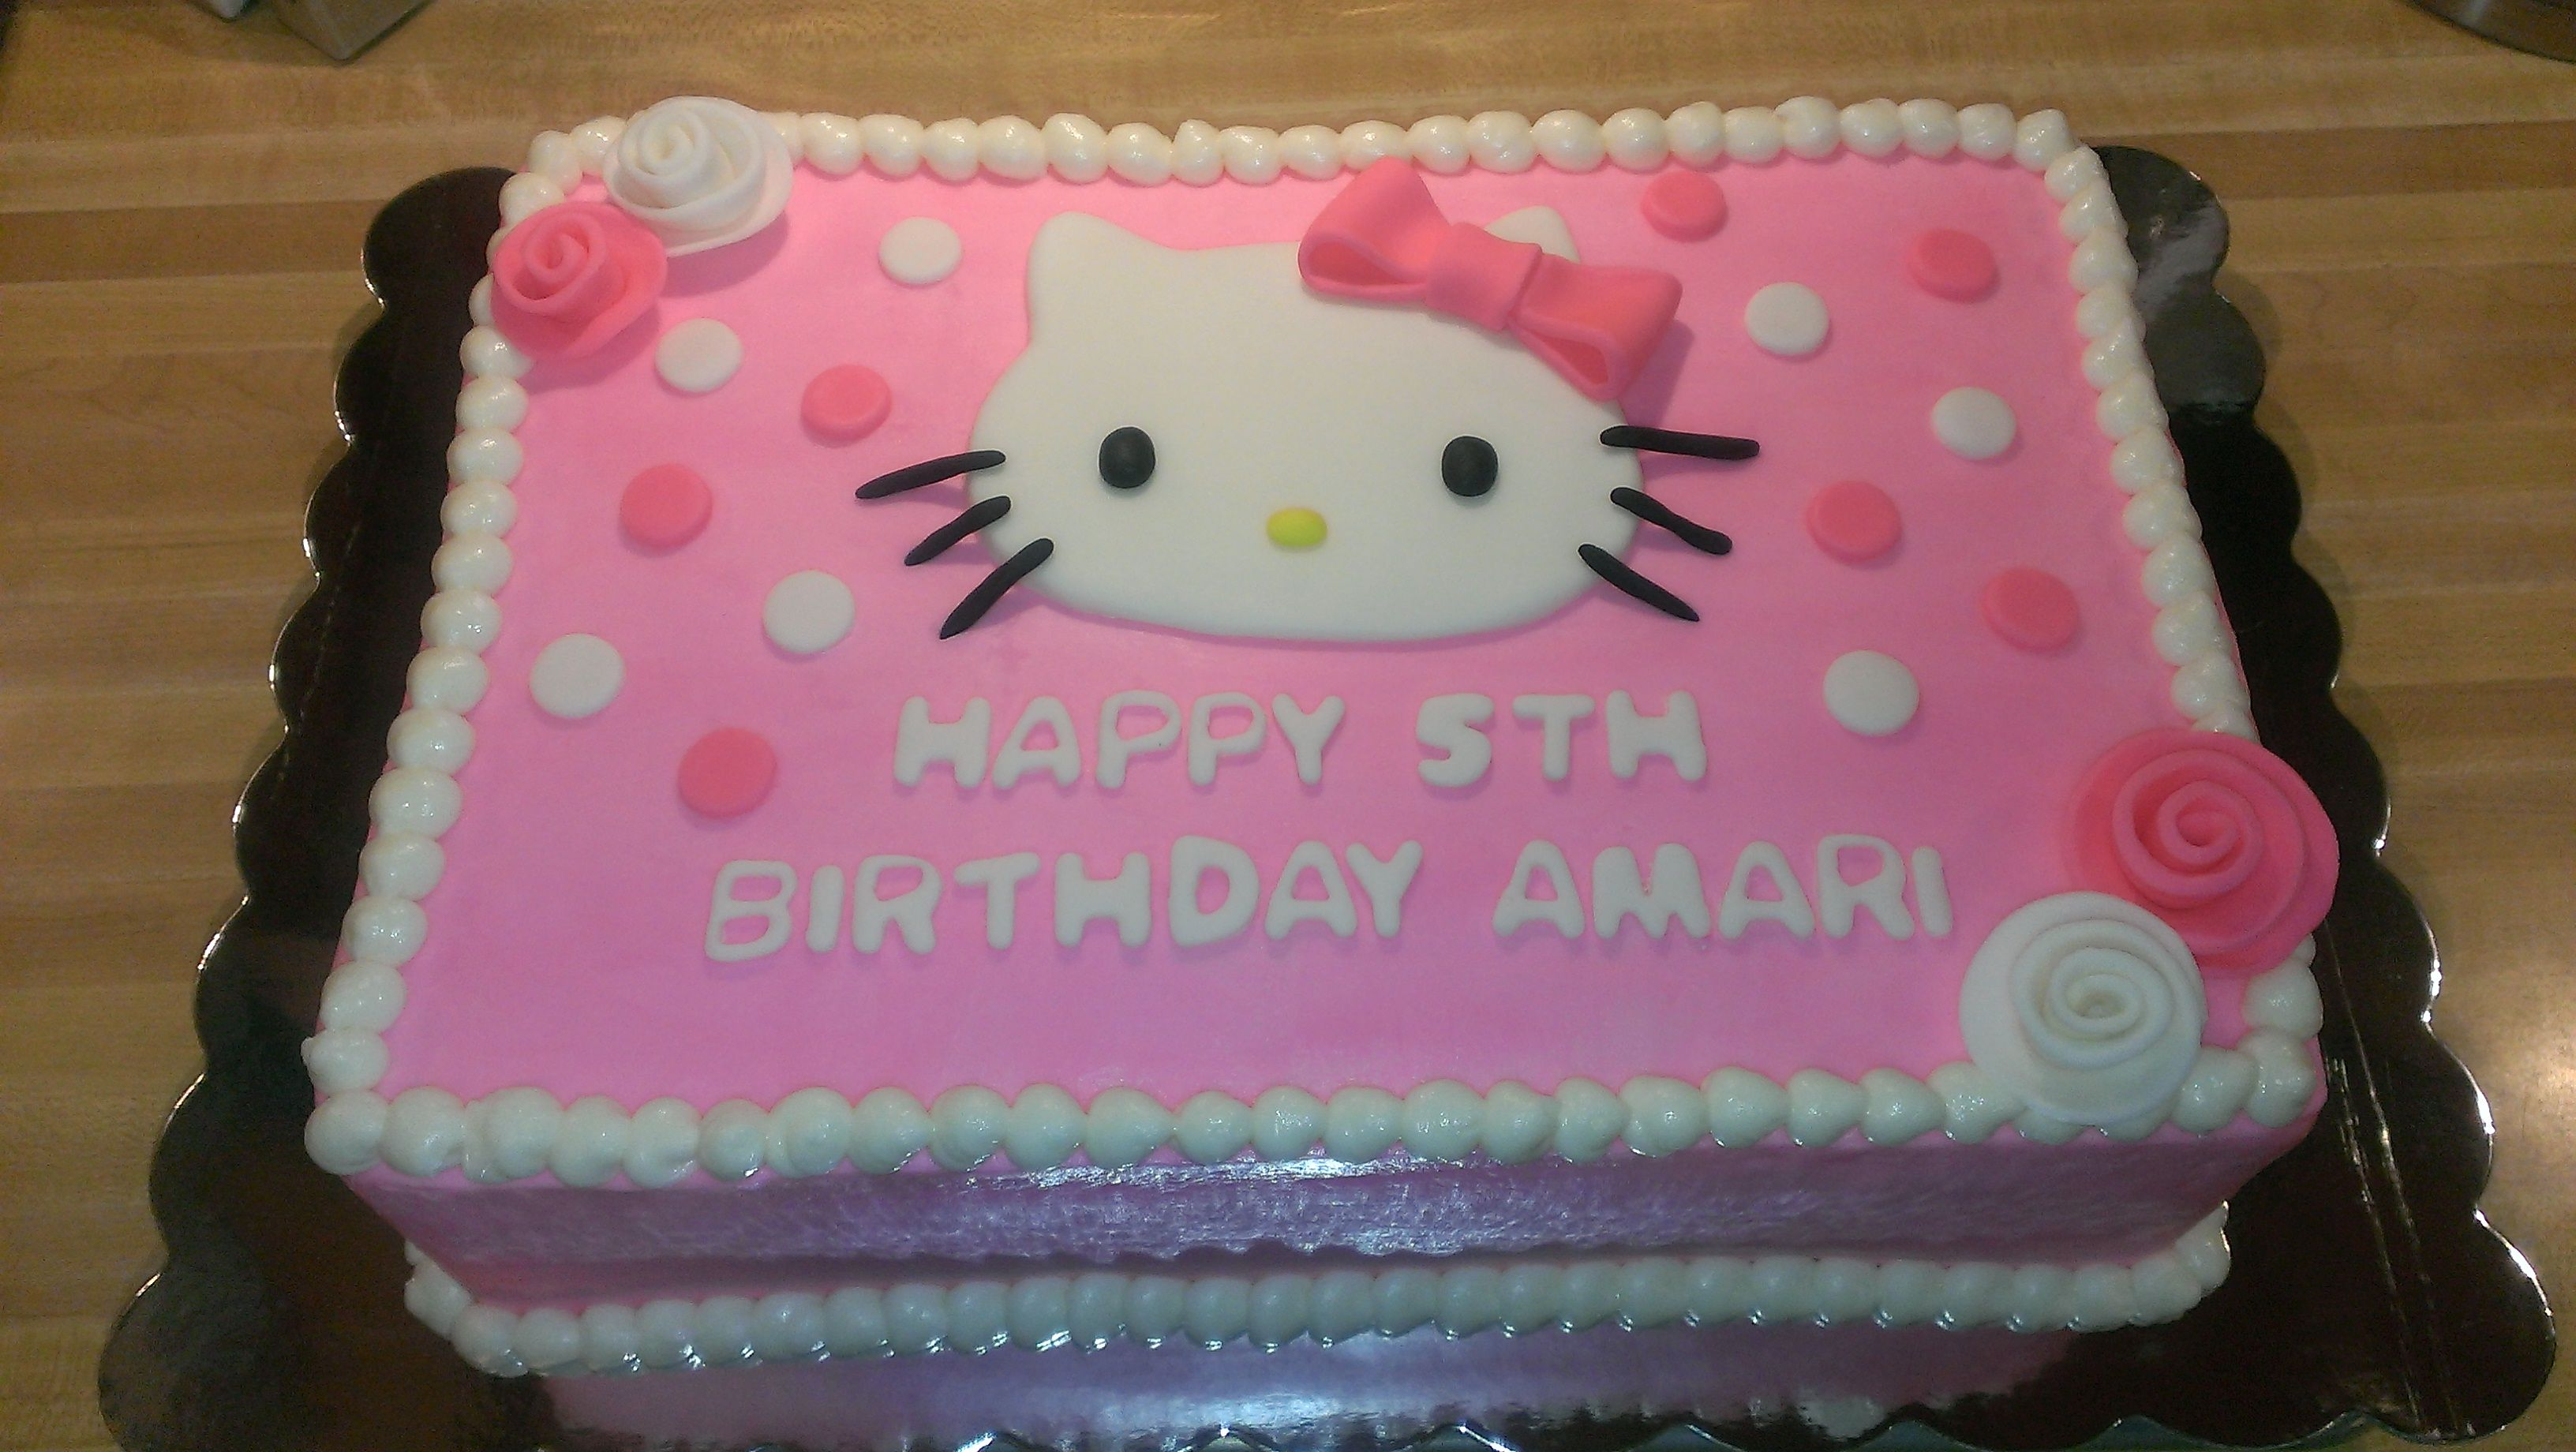 Hello Kitty Sheet Cake Decorated With Buttercream And Fondant Decorations Types Of Birthday Cakes Hello Kitty Birthday Cake Hello Kitty Cake